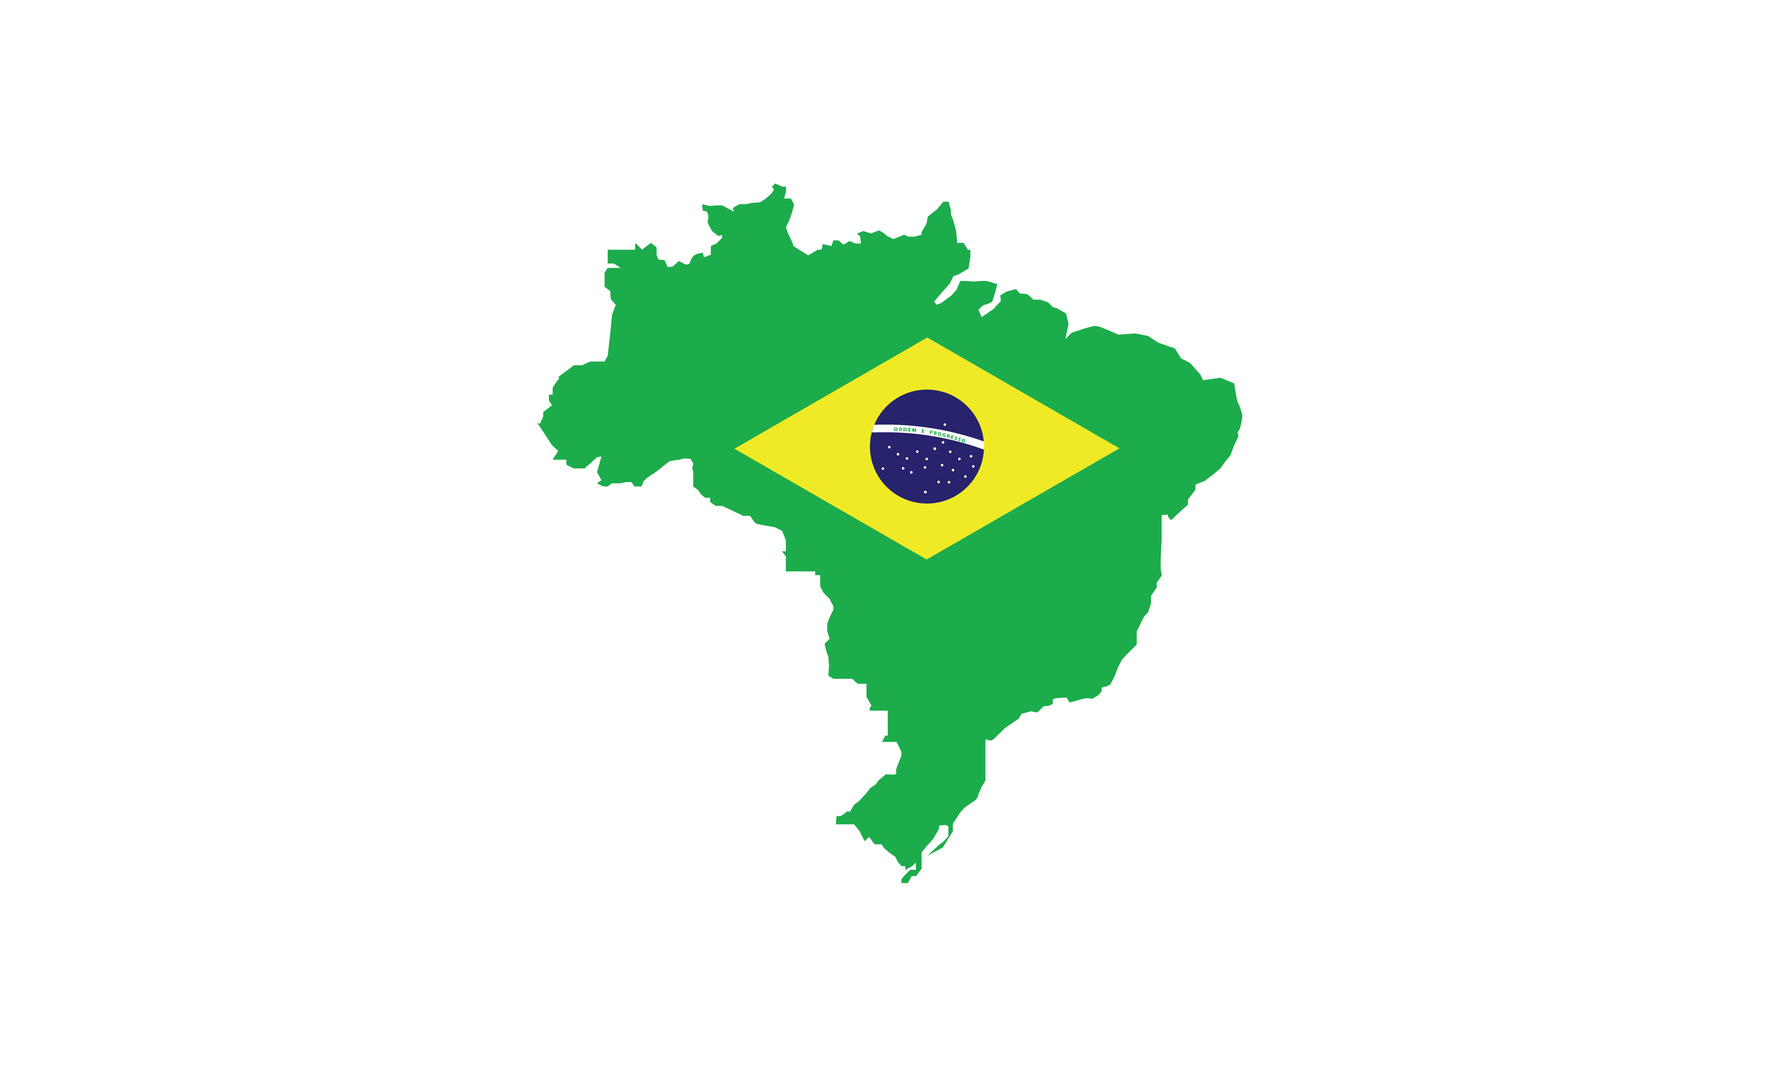 Brazil flag superimposed over country outline on WhasApp pay story